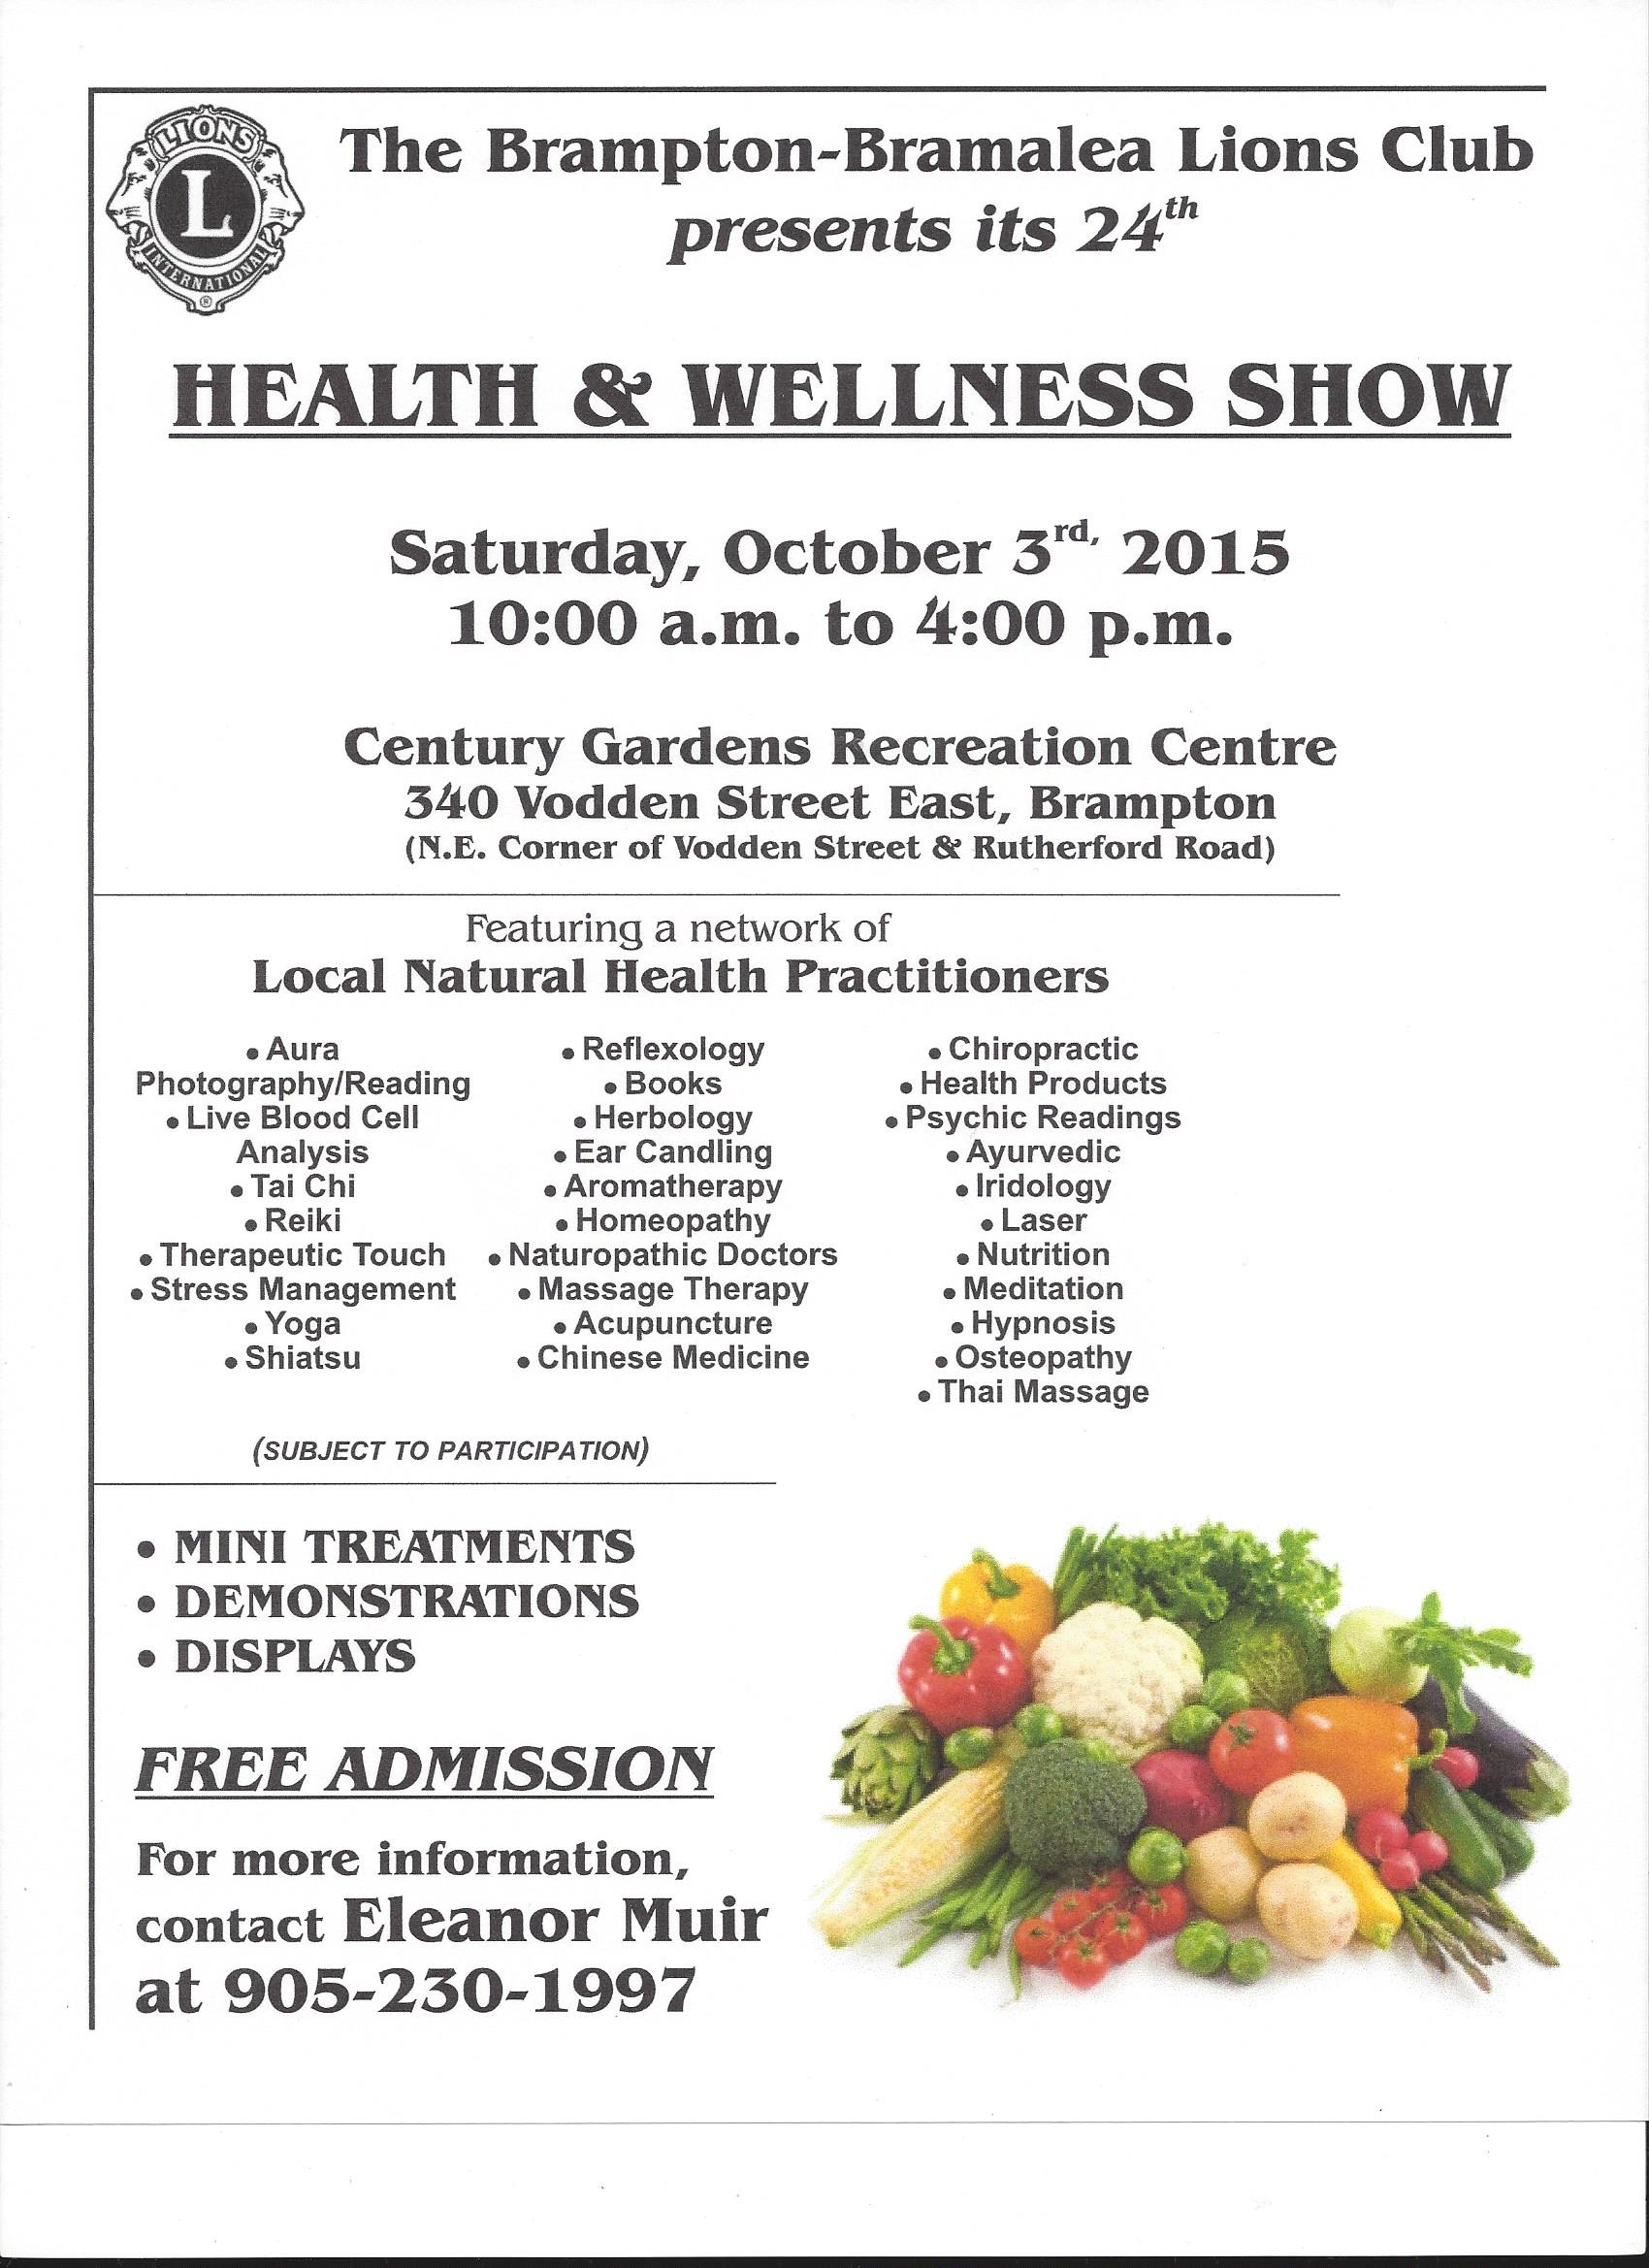 See you @ the Lion's Club Health Show!